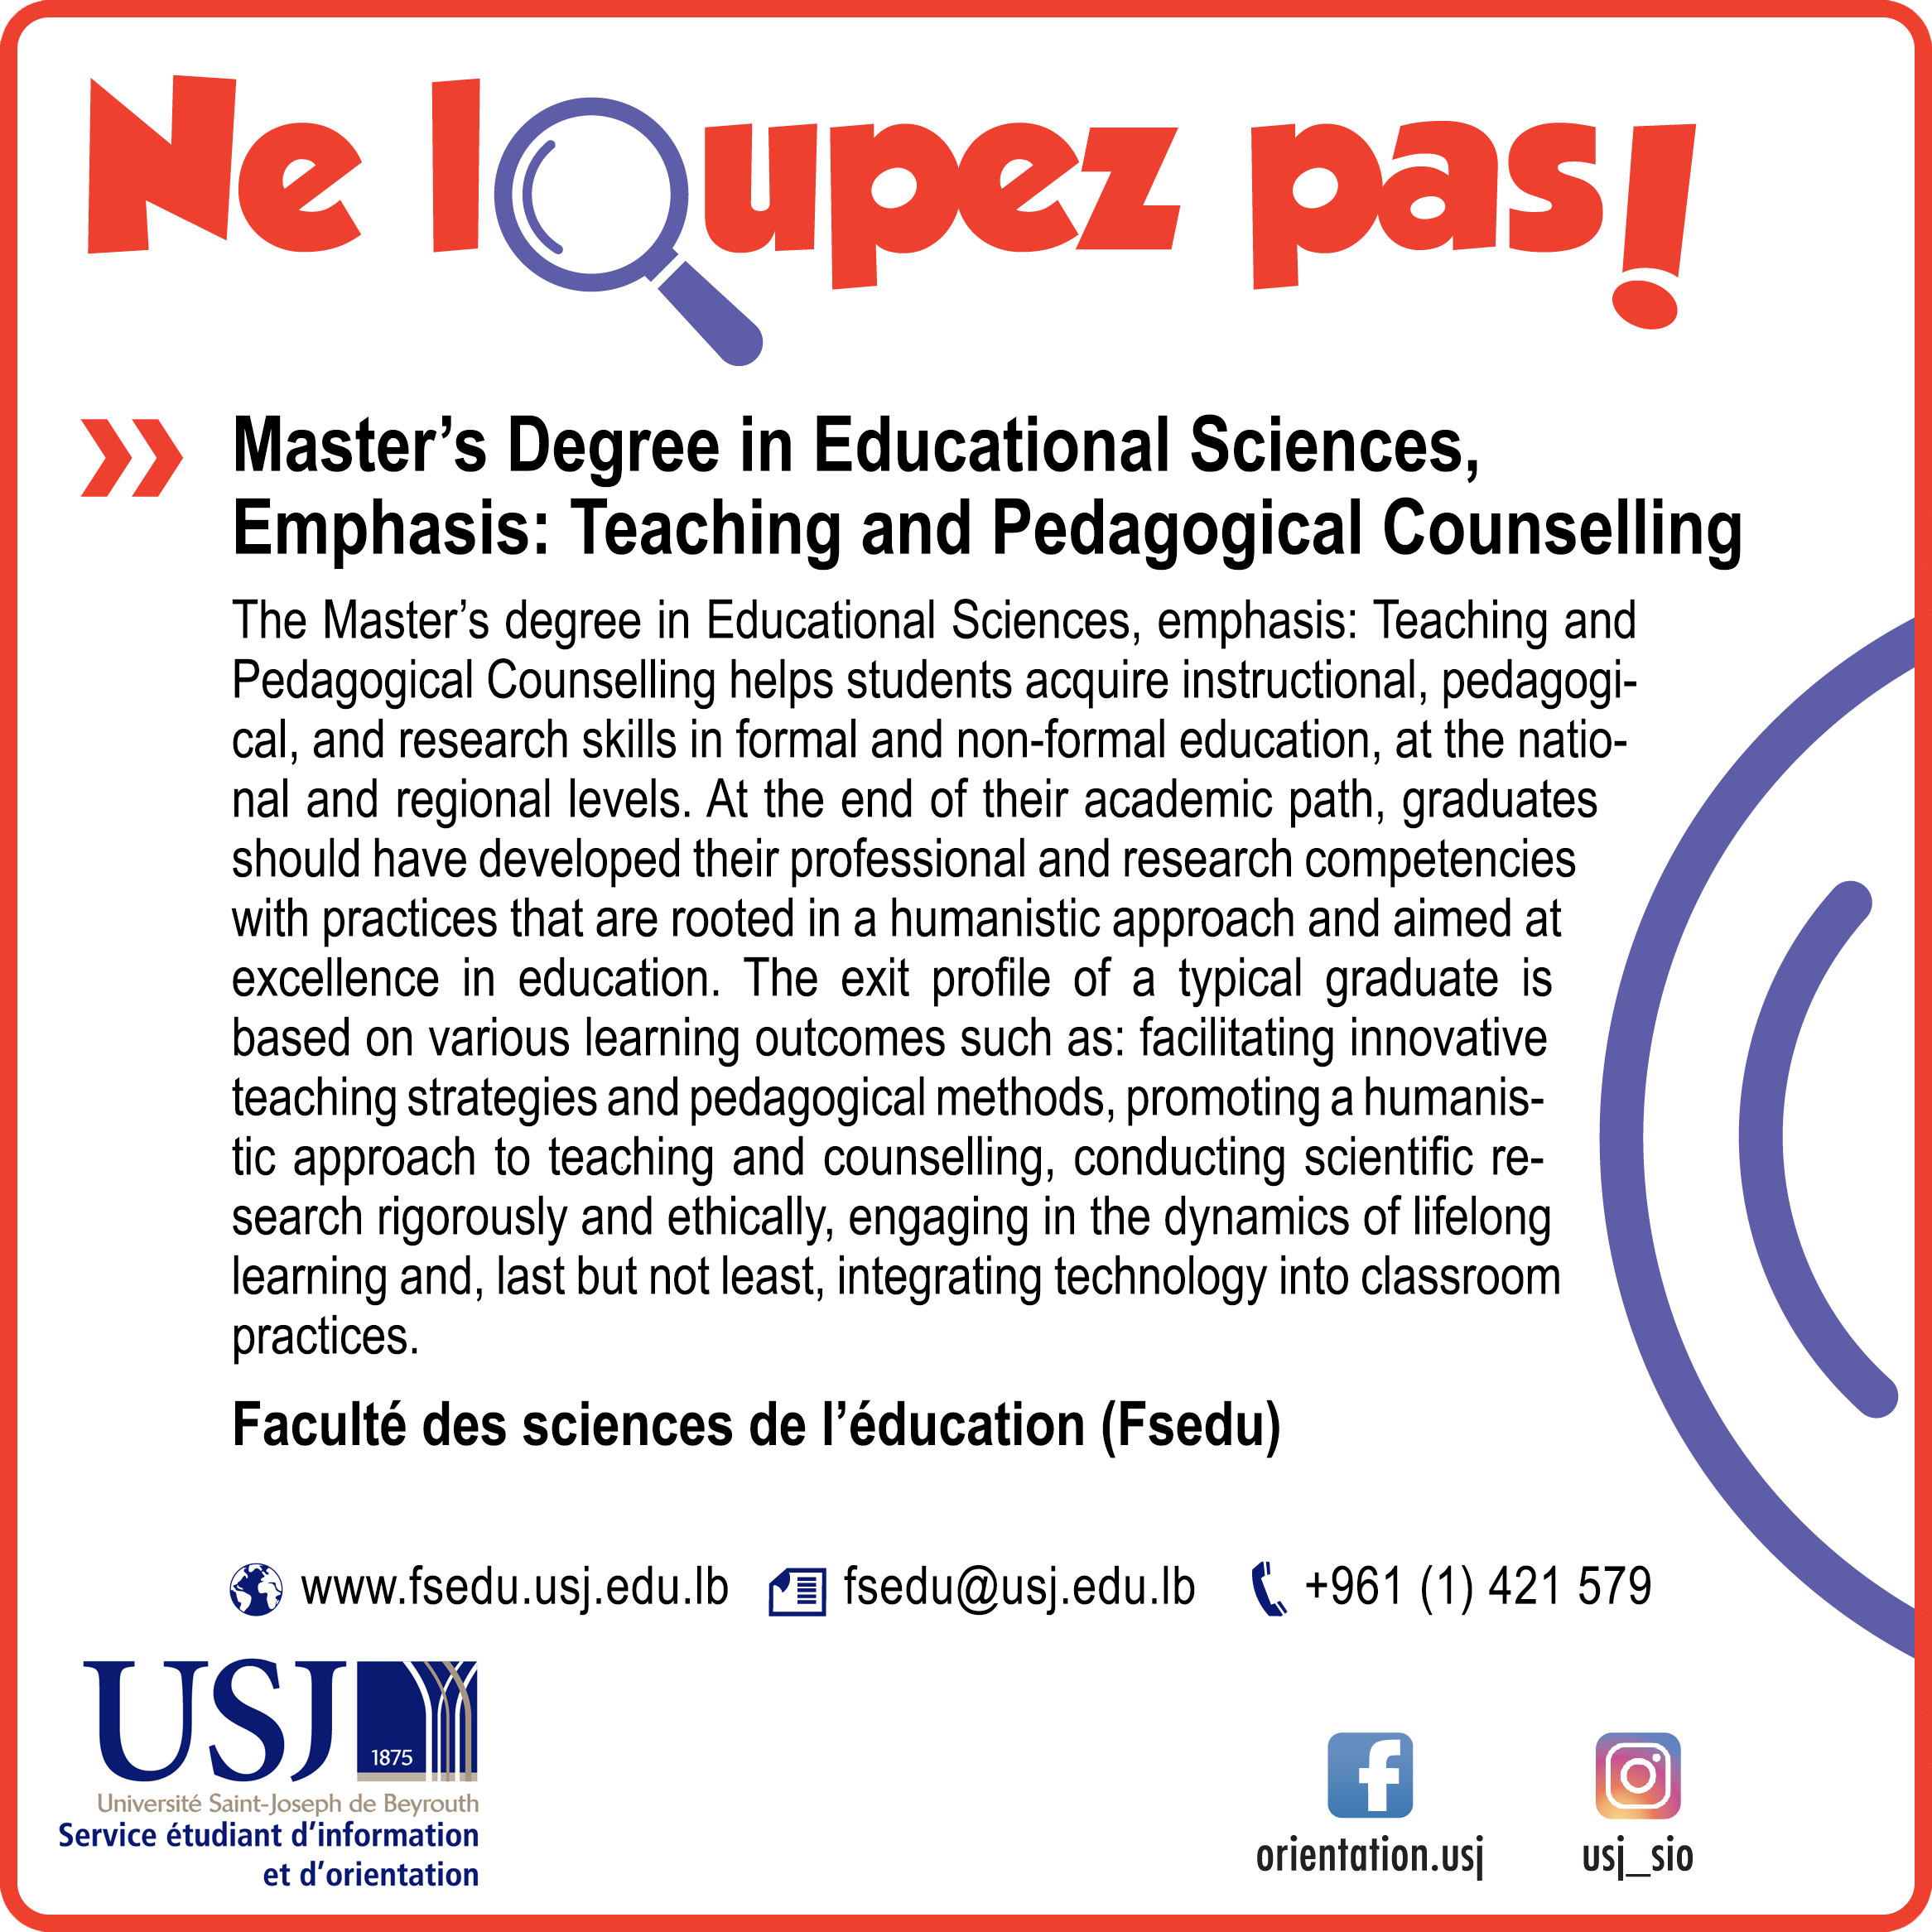 Master's Degree in Educational Sciences, Emphasis: Teaching and Pedagogical Counselling